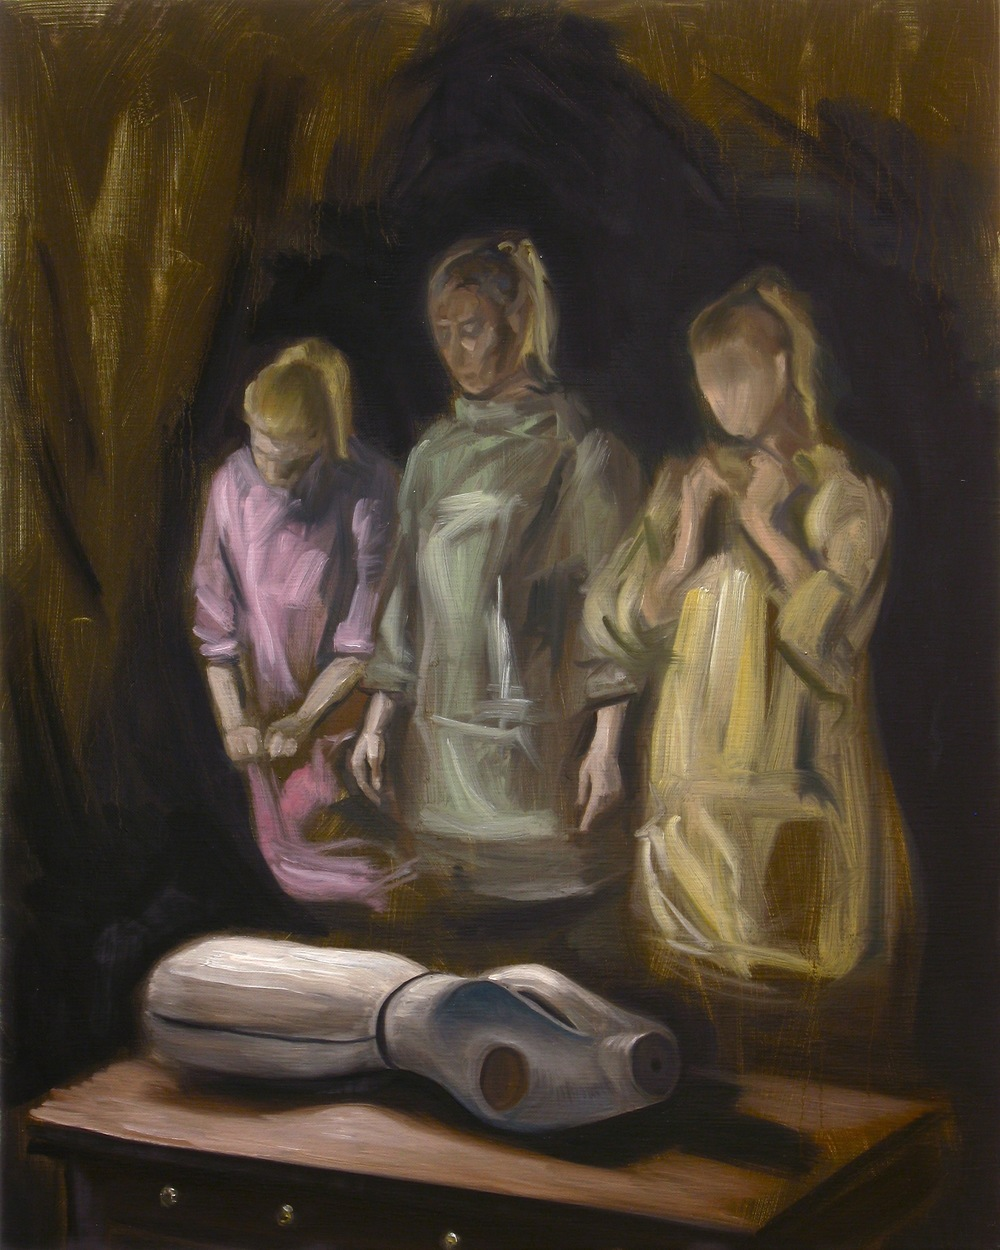 The Three, Oil on linen, 50 x 40cm, 2013